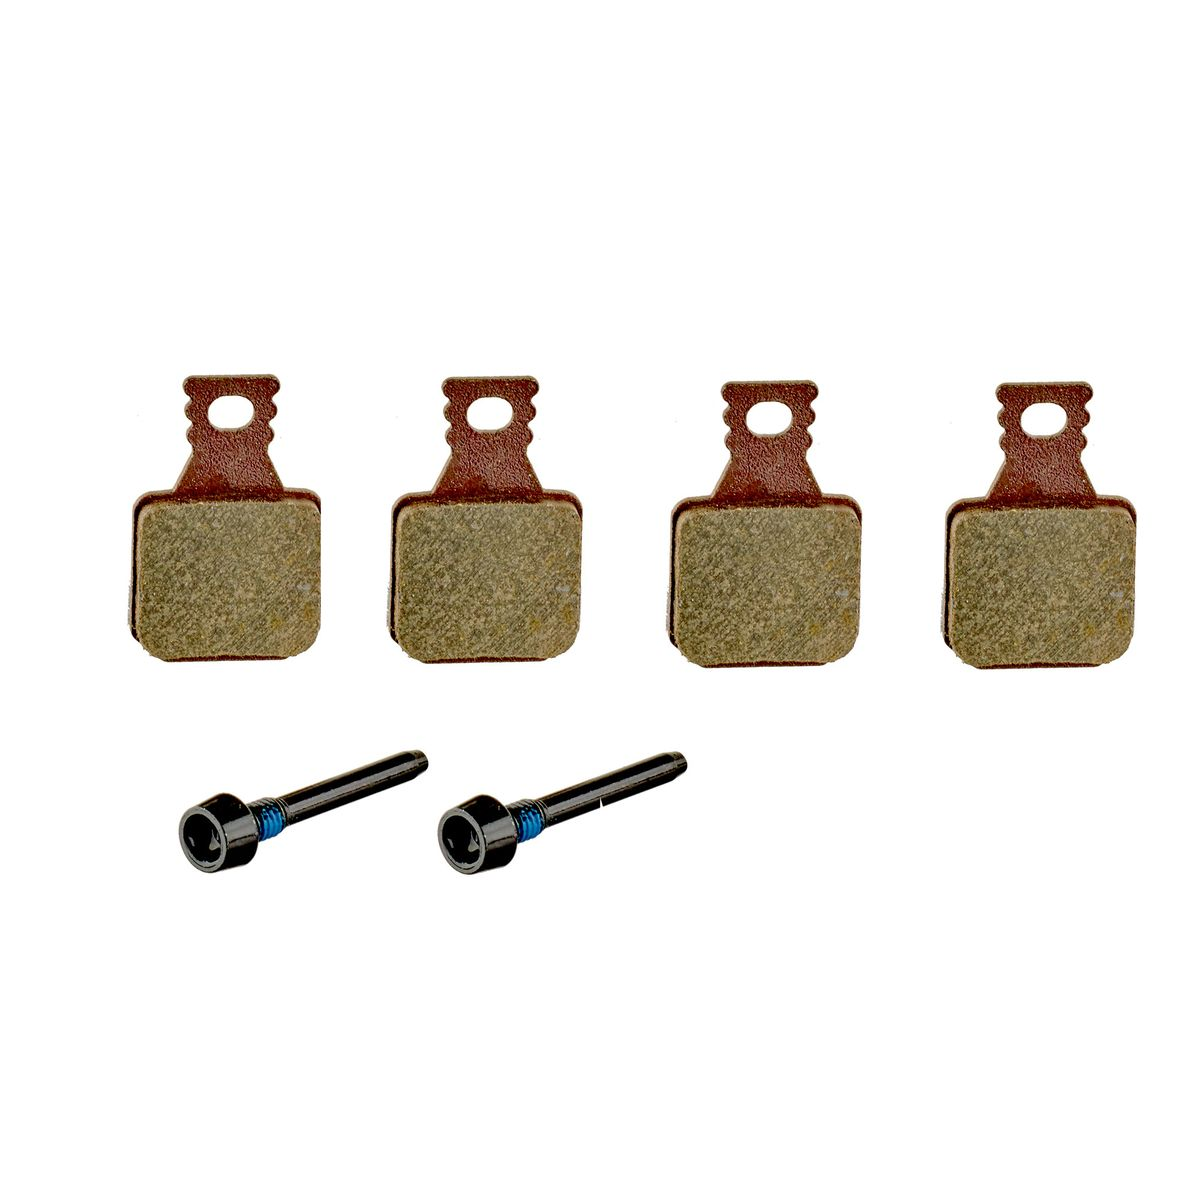 8.R Race Disc brake pads for MT5/MT7